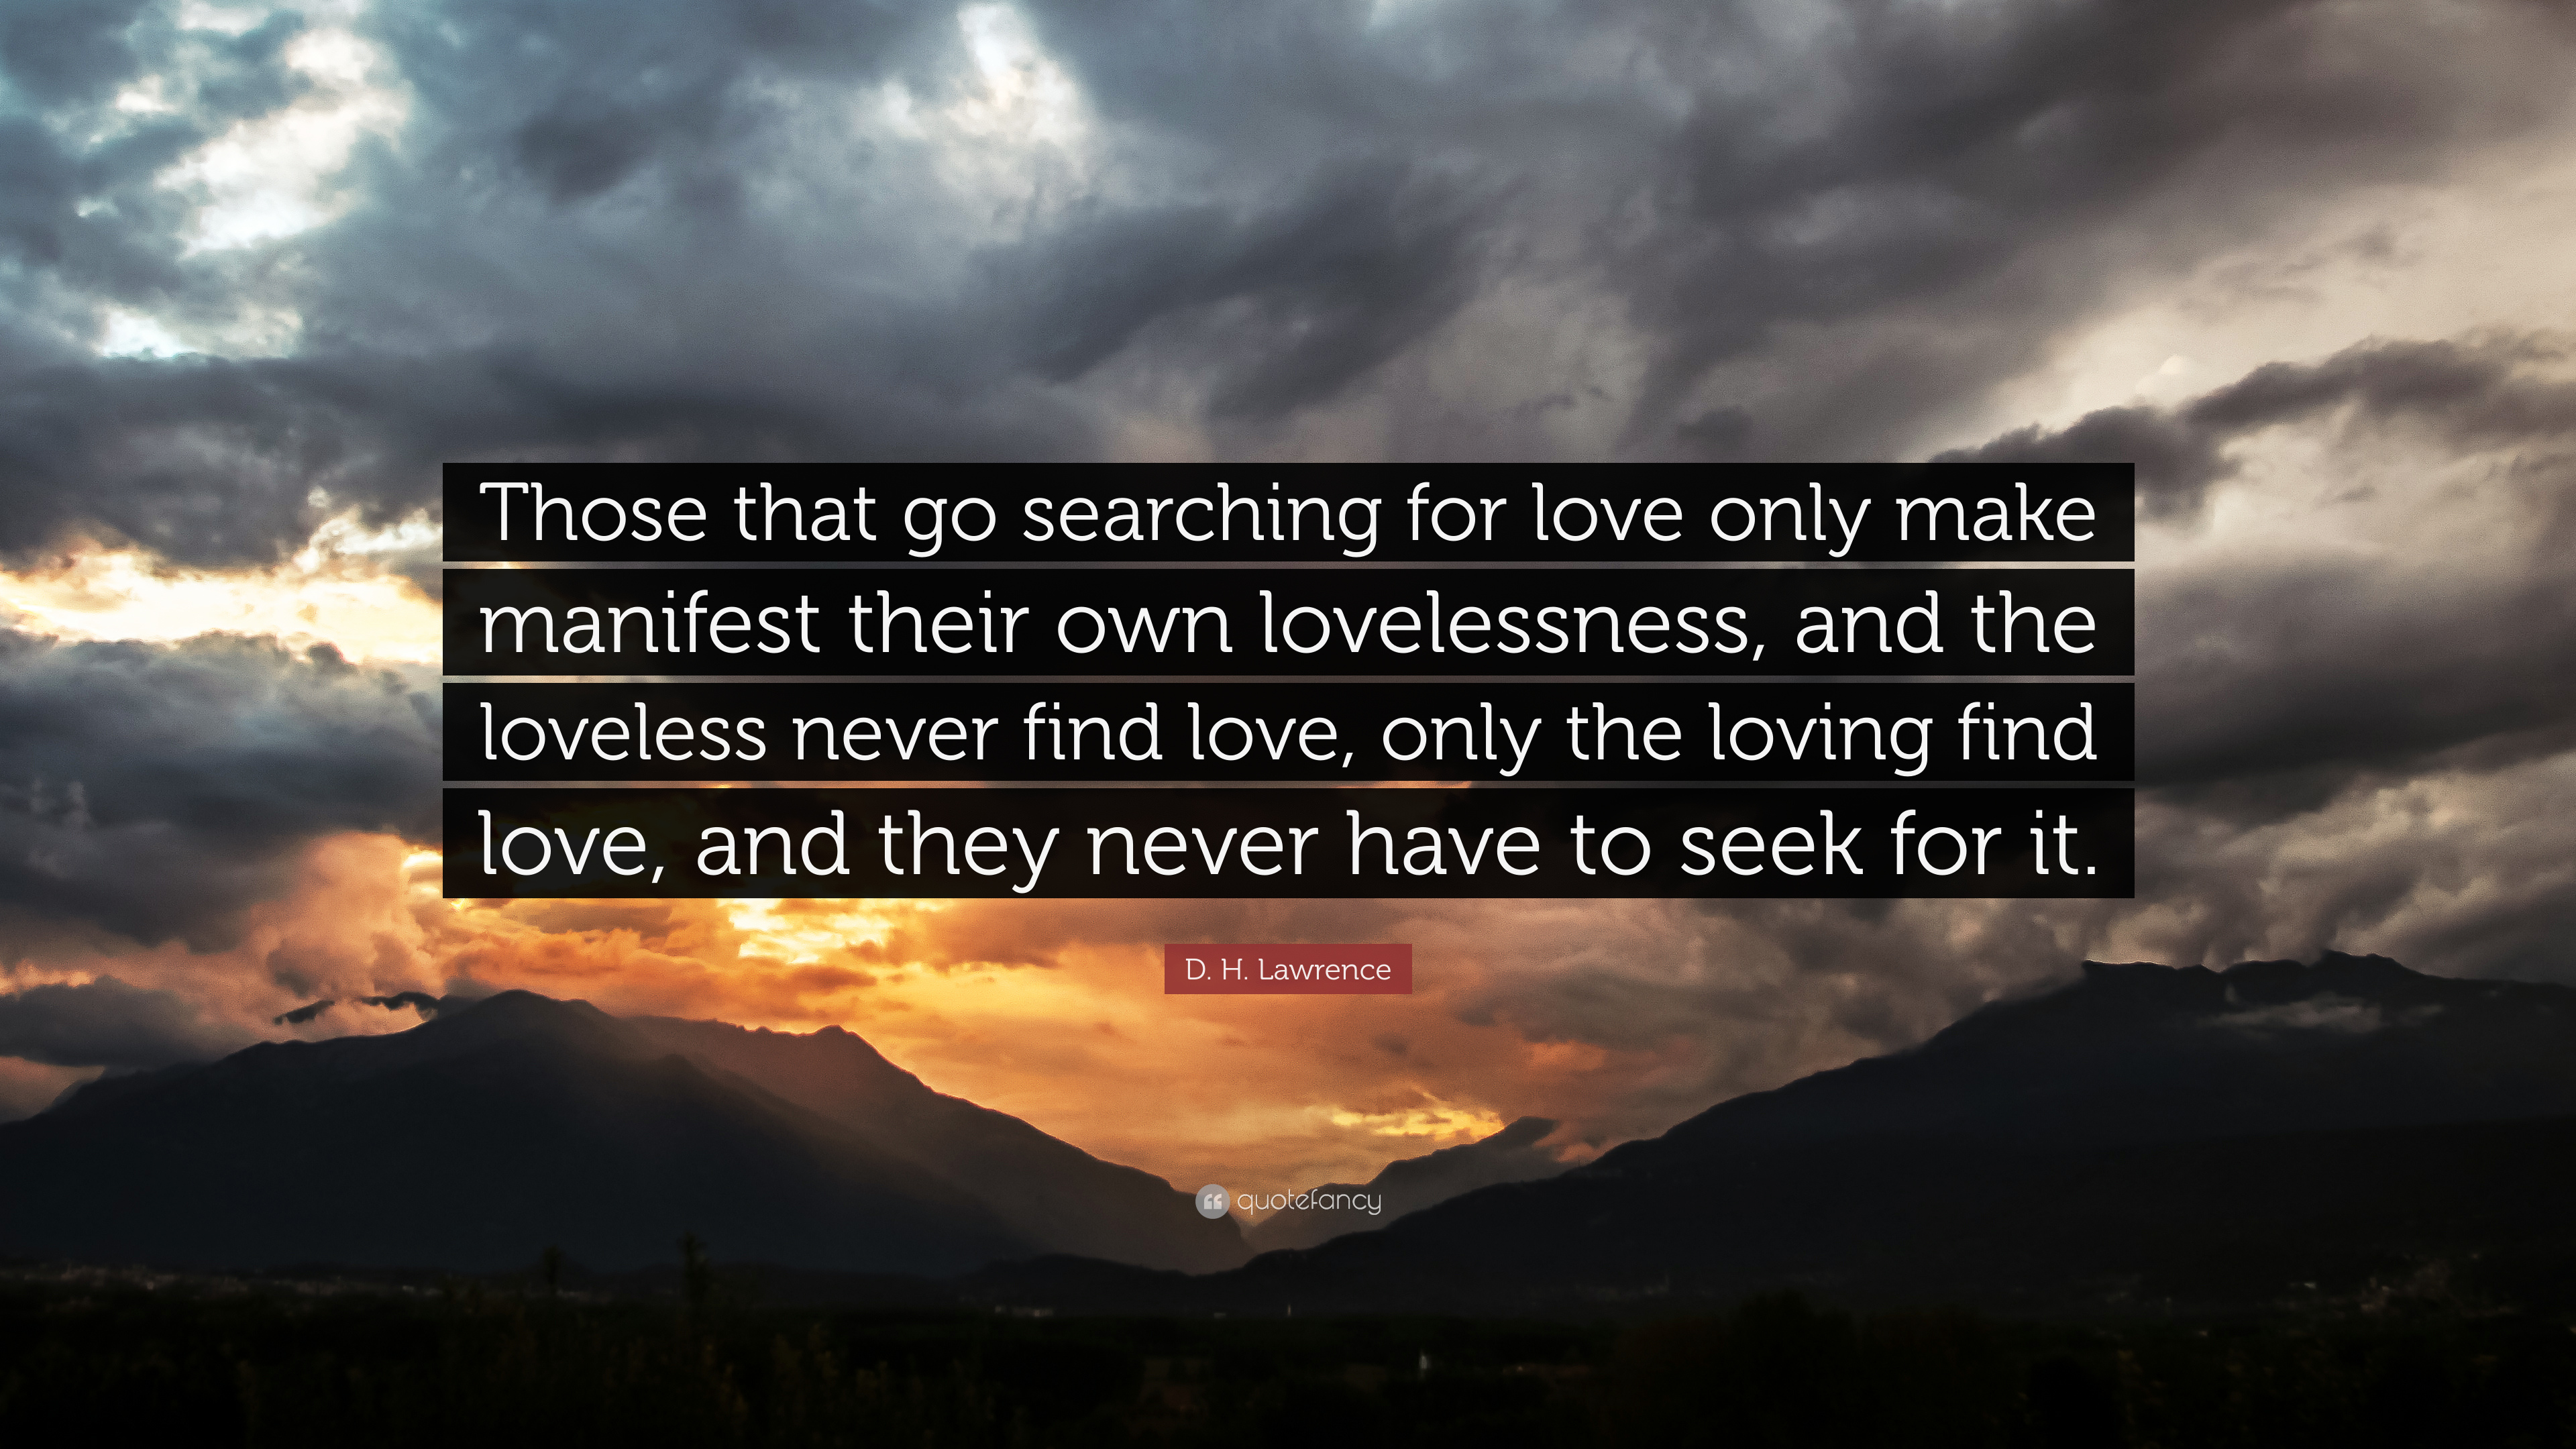 D H Lawrence Quote Those That Go Searching For Love Only Make